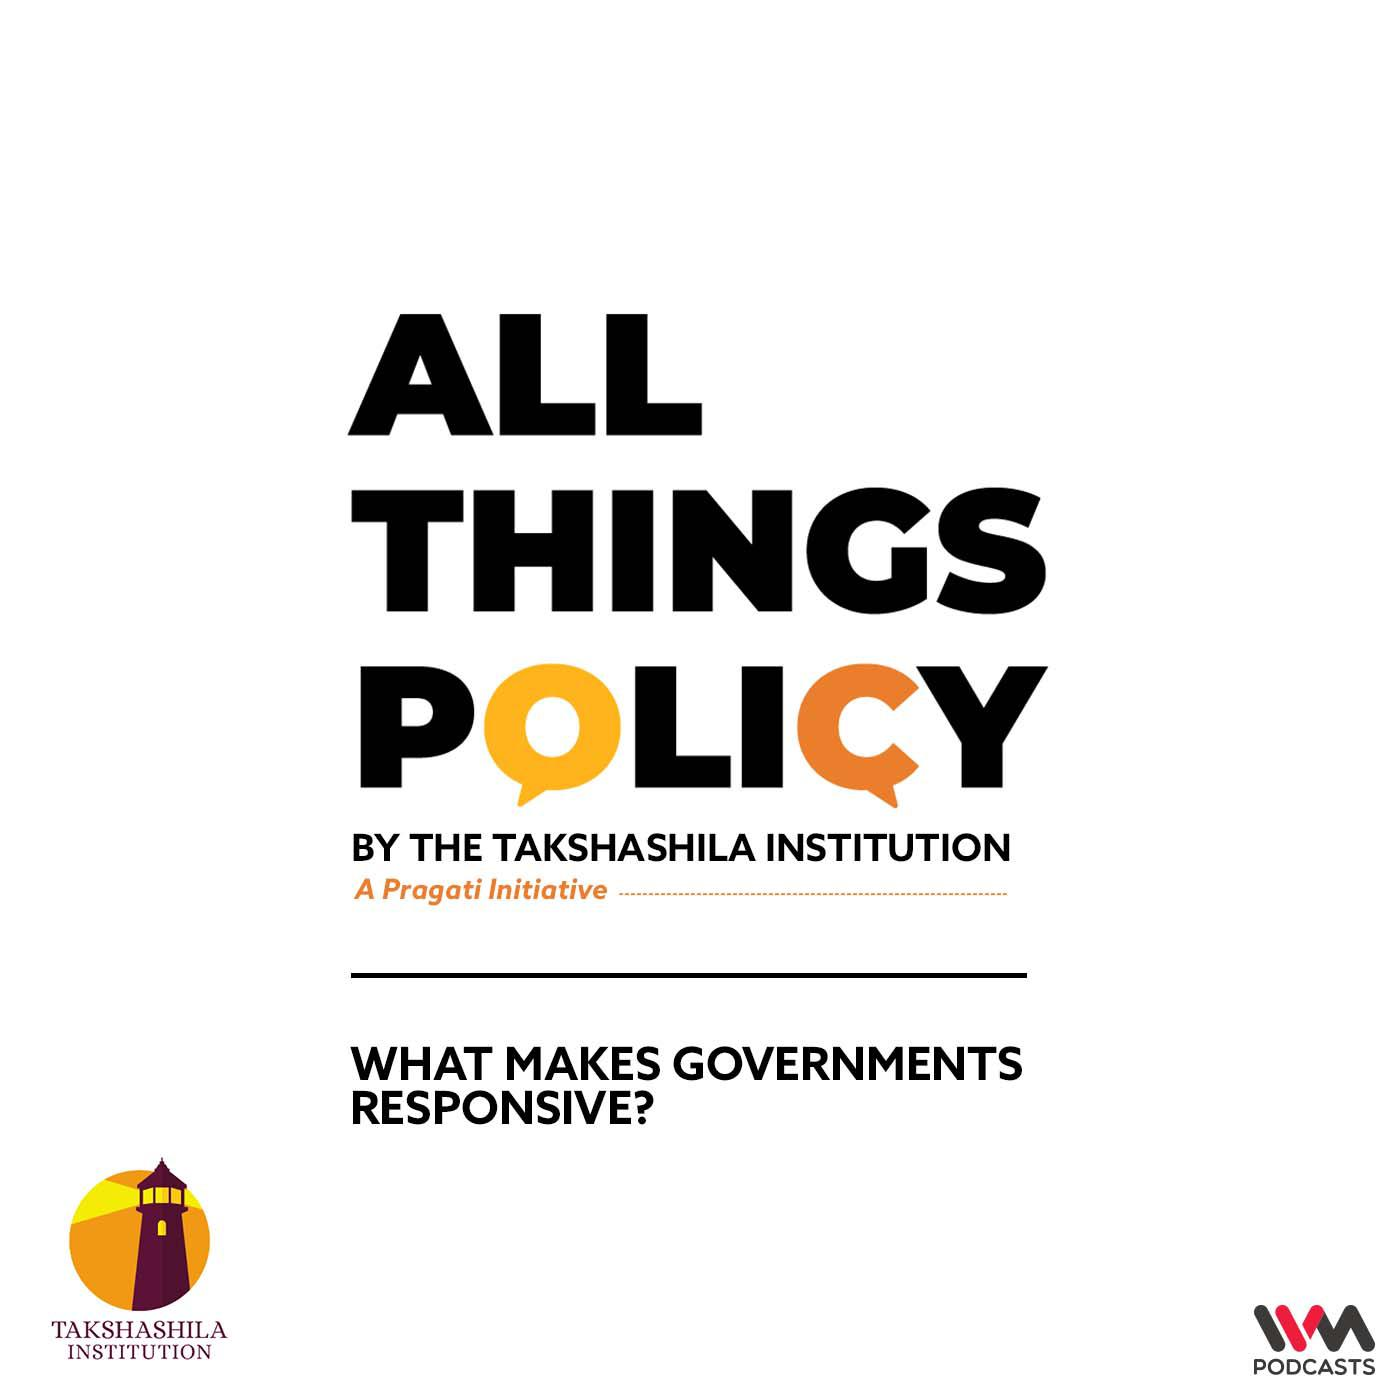 What Makes Governments Responsive?